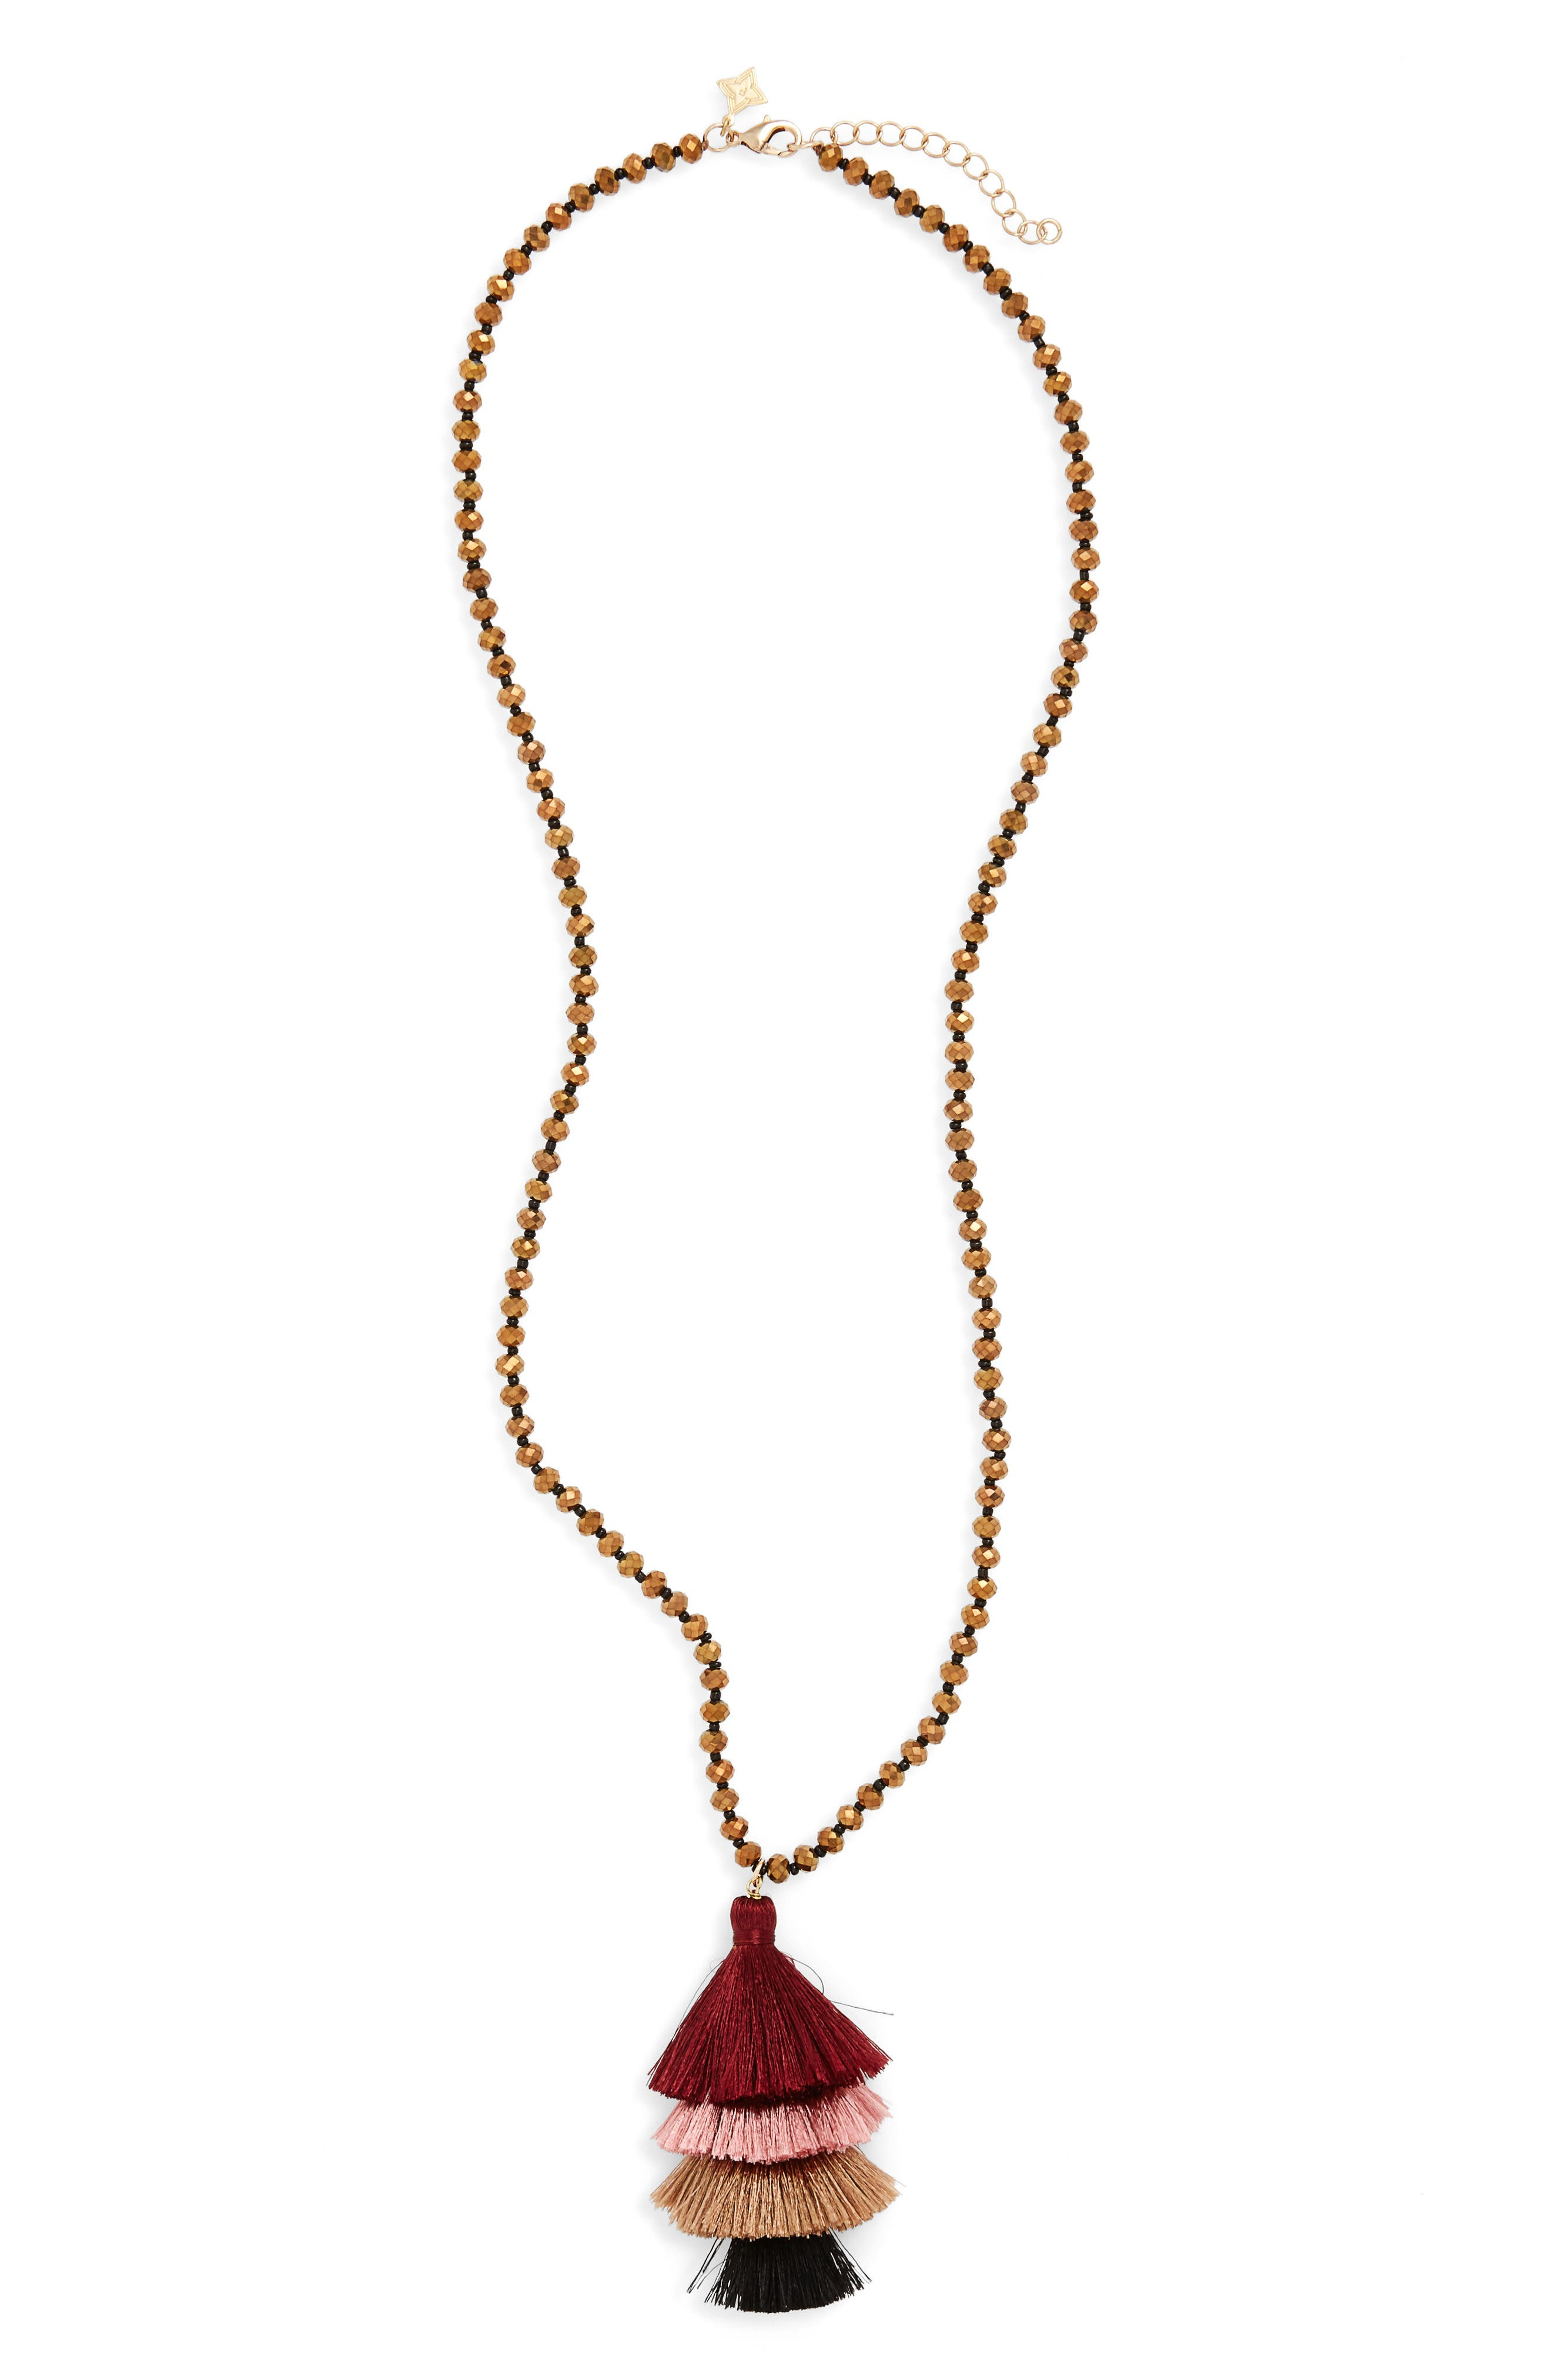 Stacked Tassel Necklace,                             Main thumbnail 1, color,                             Burgundy